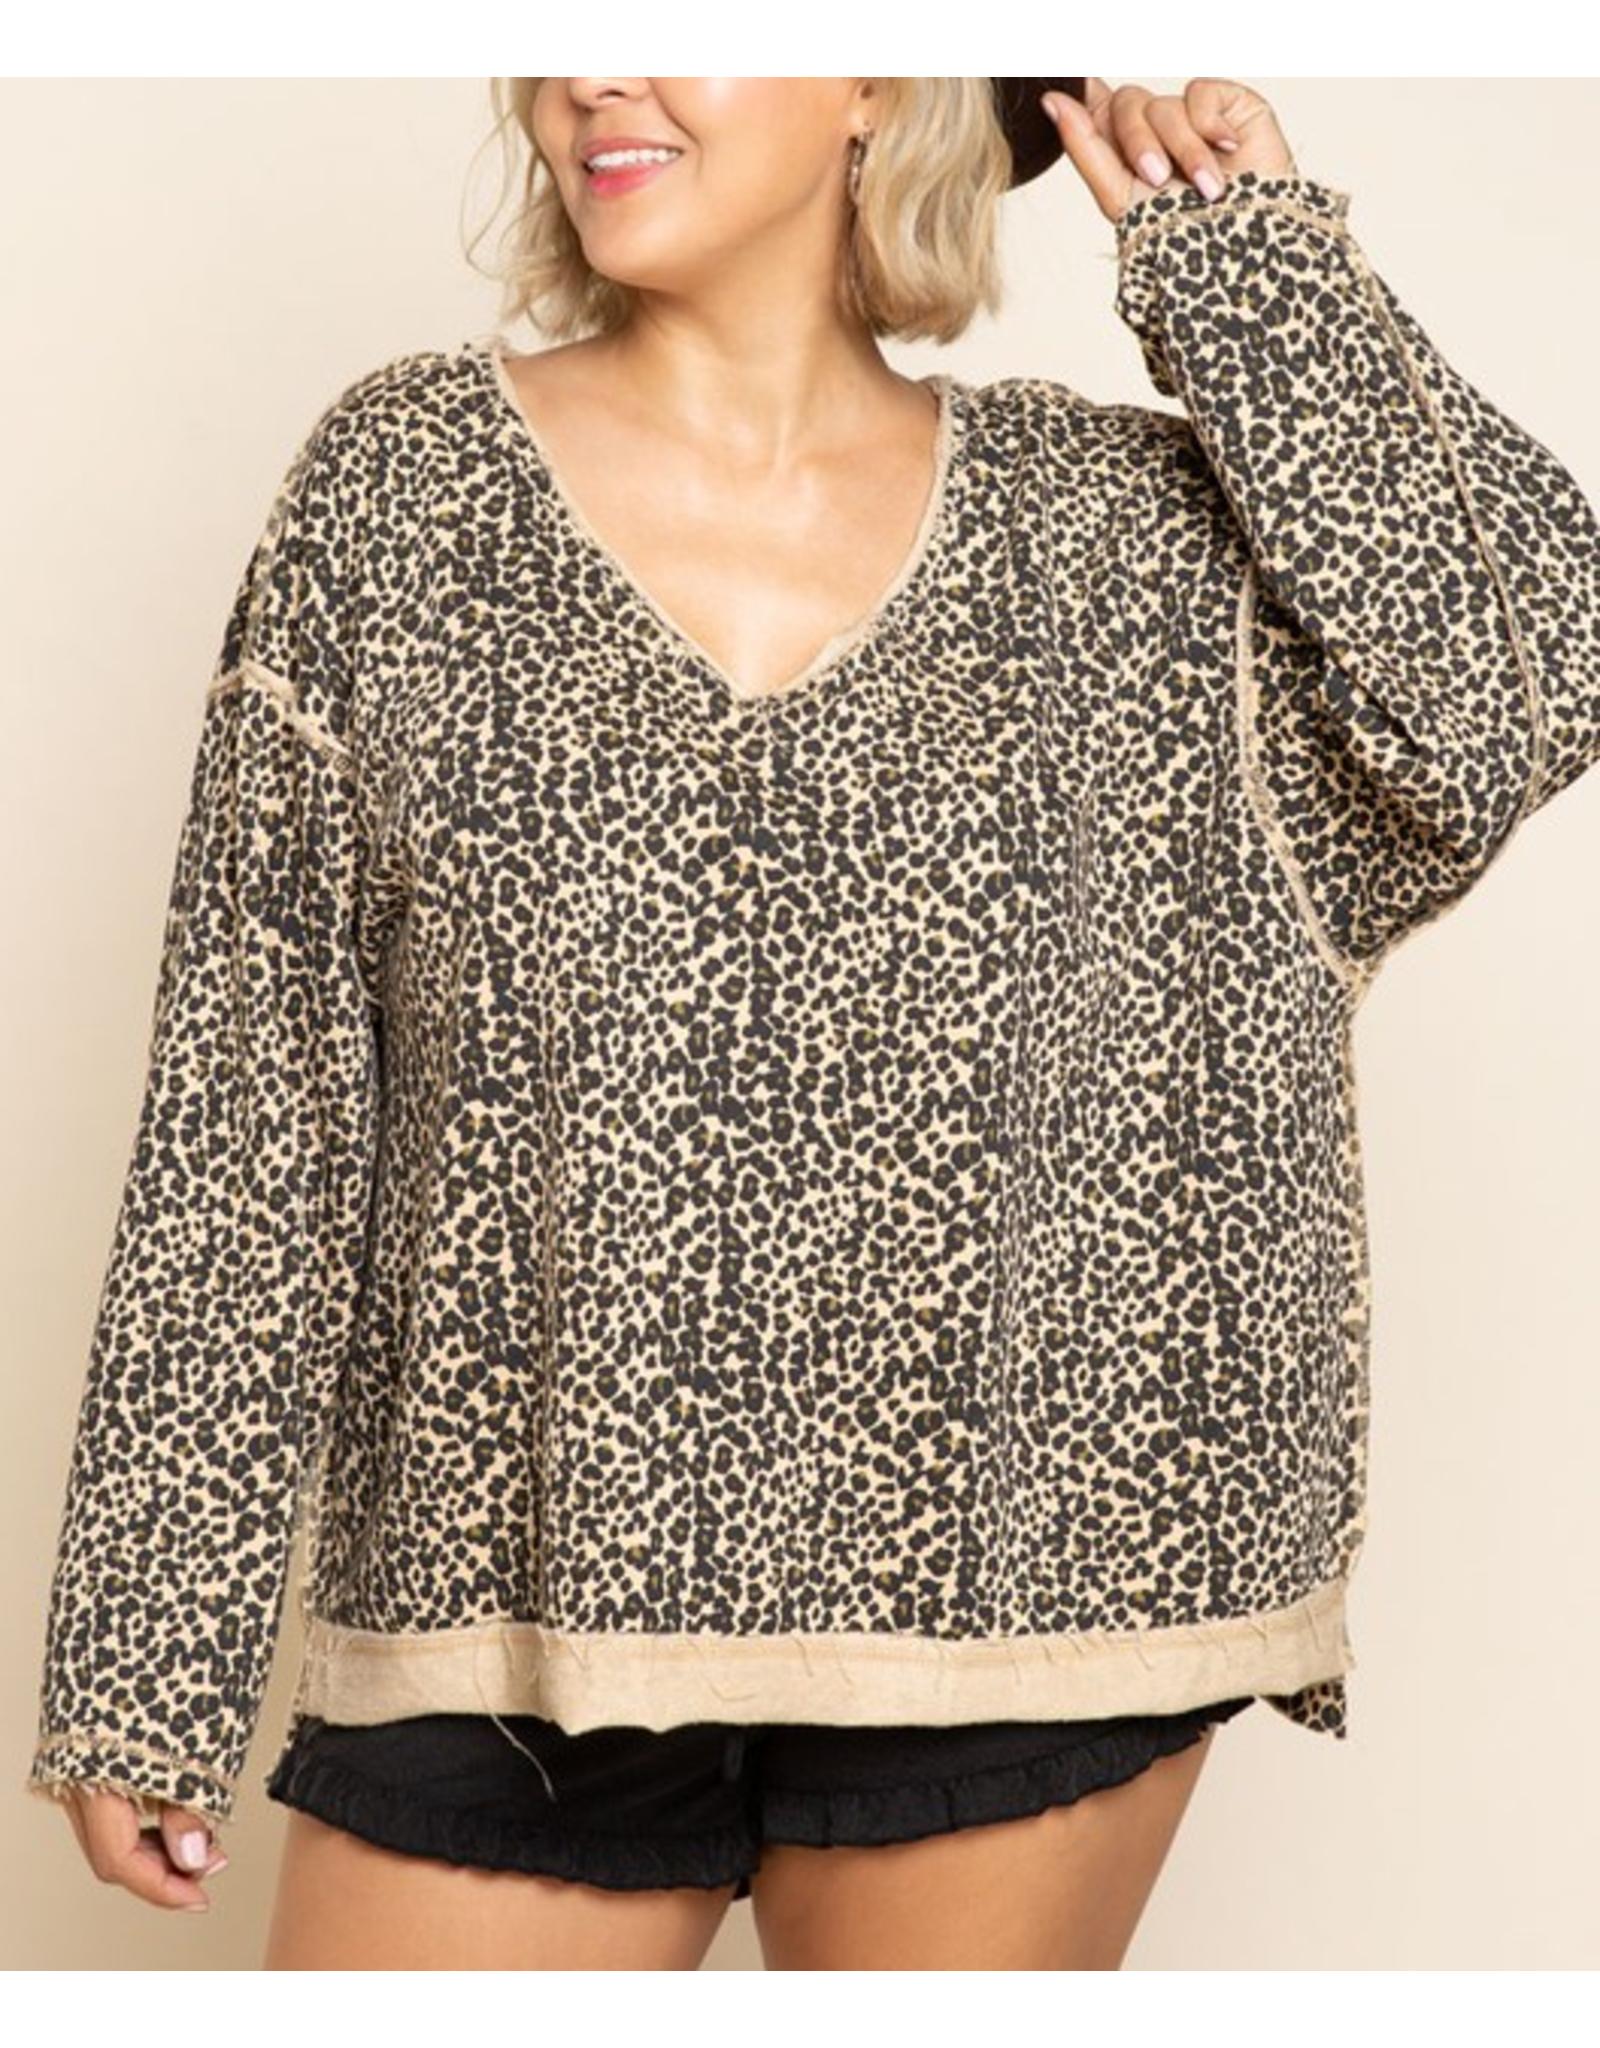 Leopard Reversible French Terry Top - Hazelnut